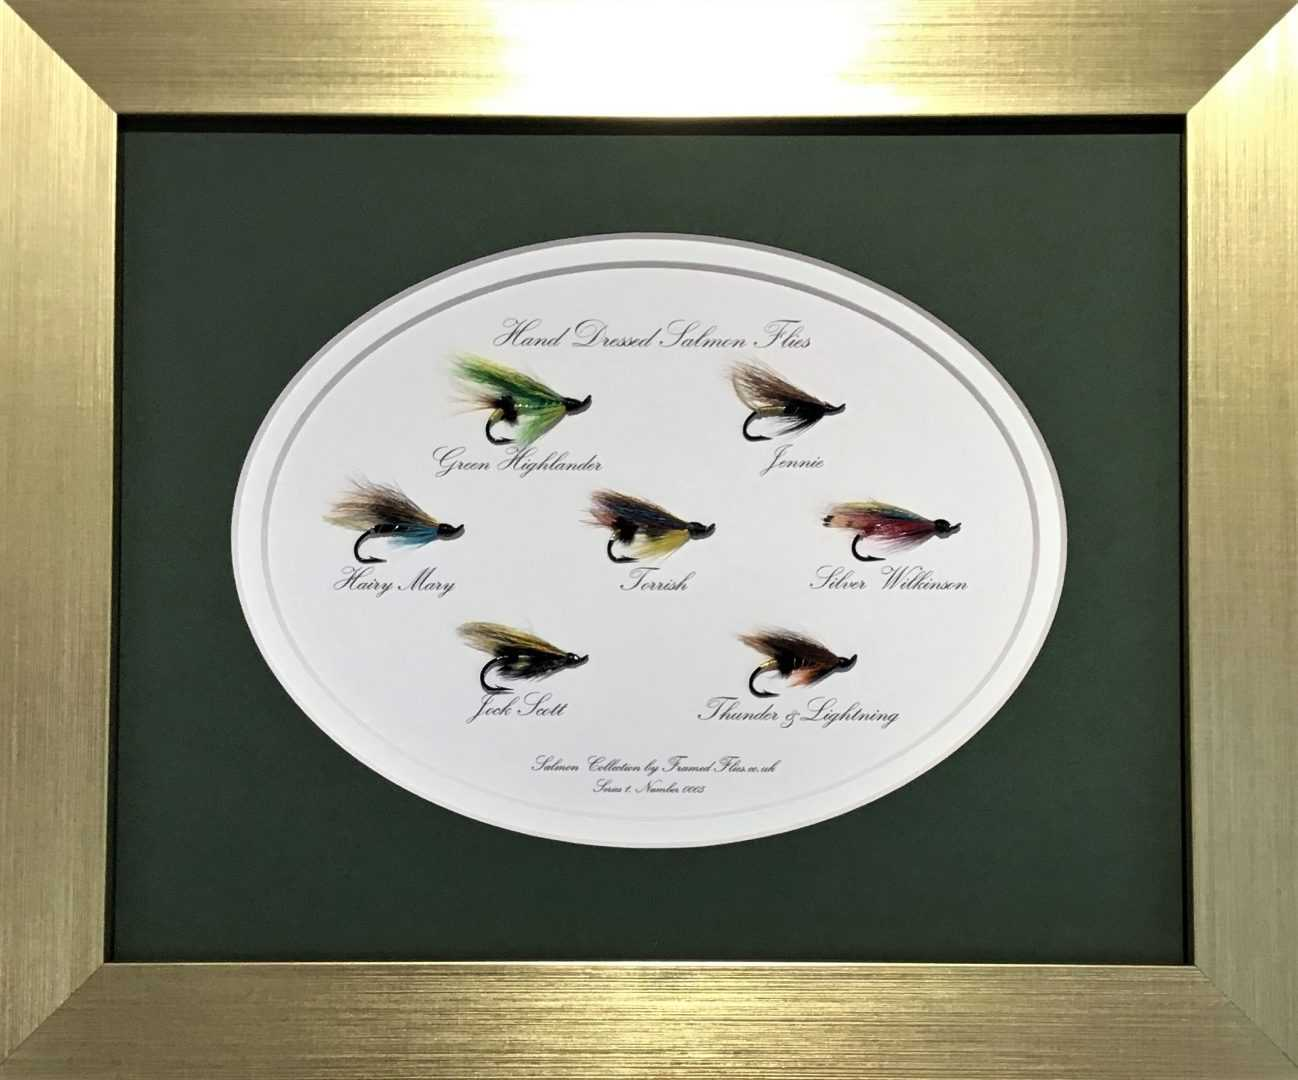 Salmon Fly Collection Framed Flies.co.uk Gold Green